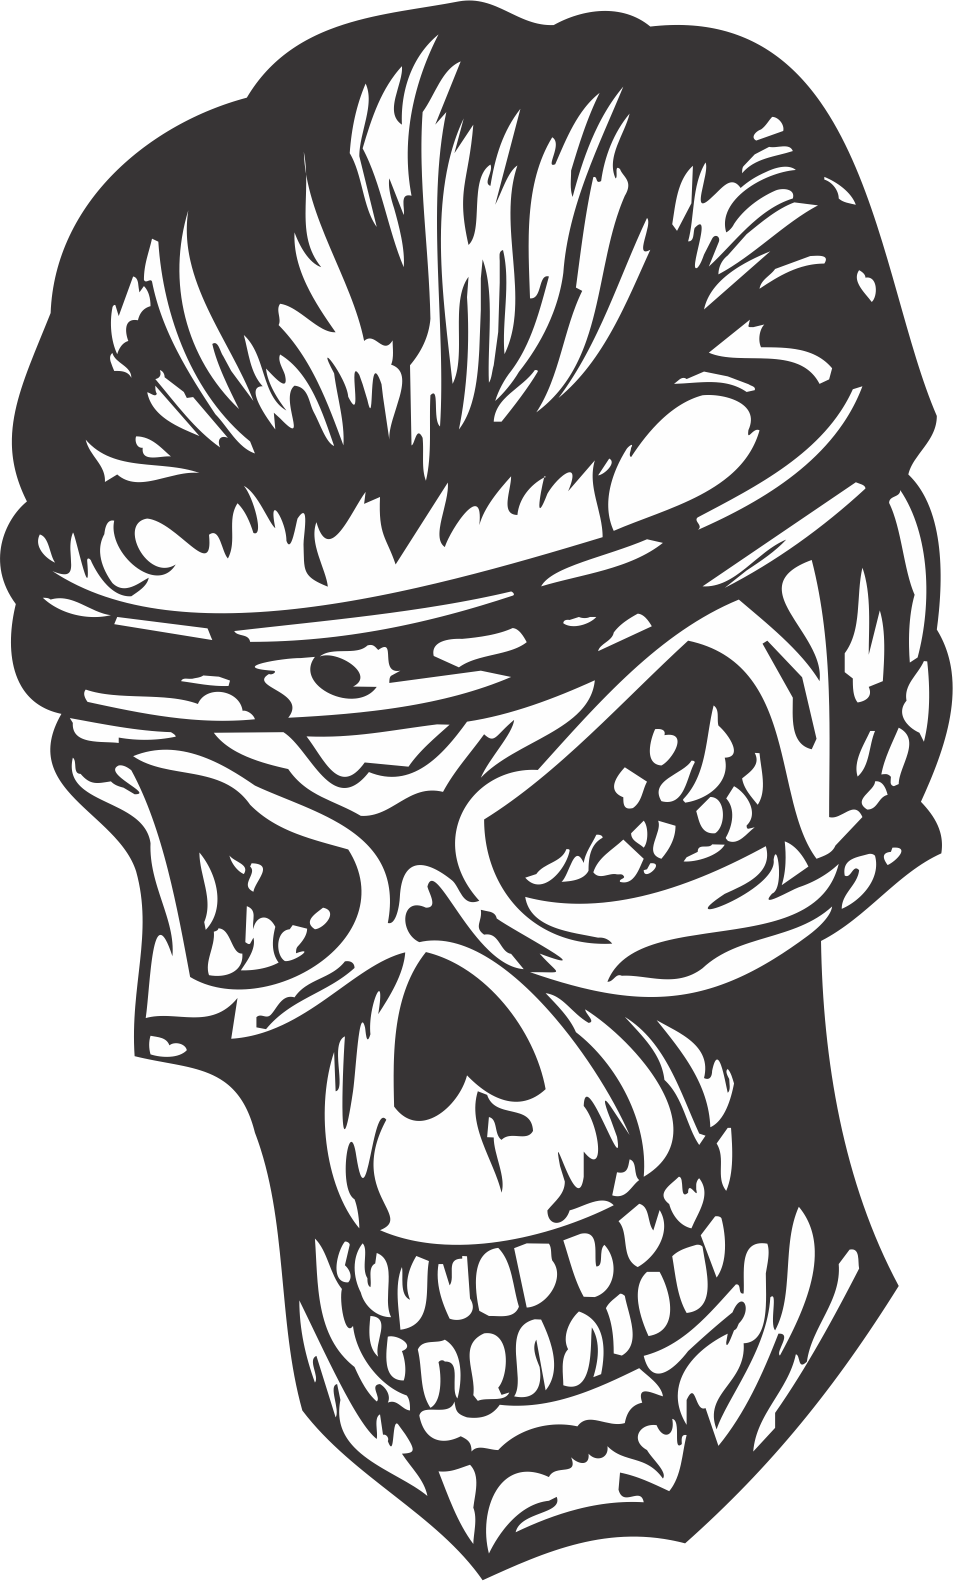 Scary Skull DXF File